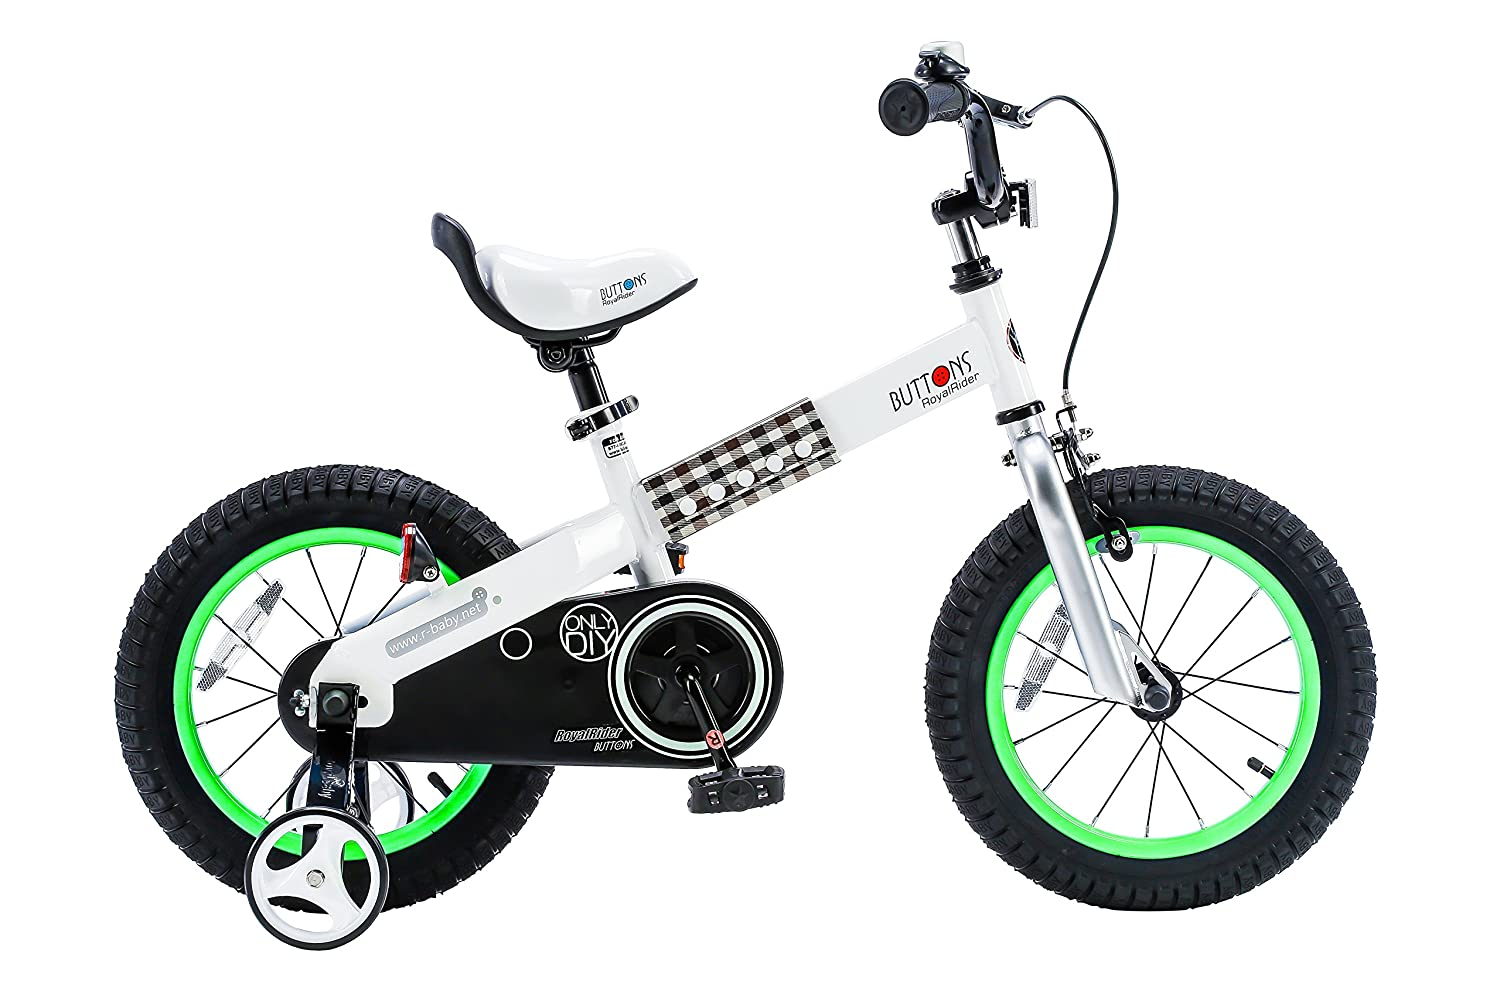 RoyalBaby CubeTube Unisex bike with training wheels